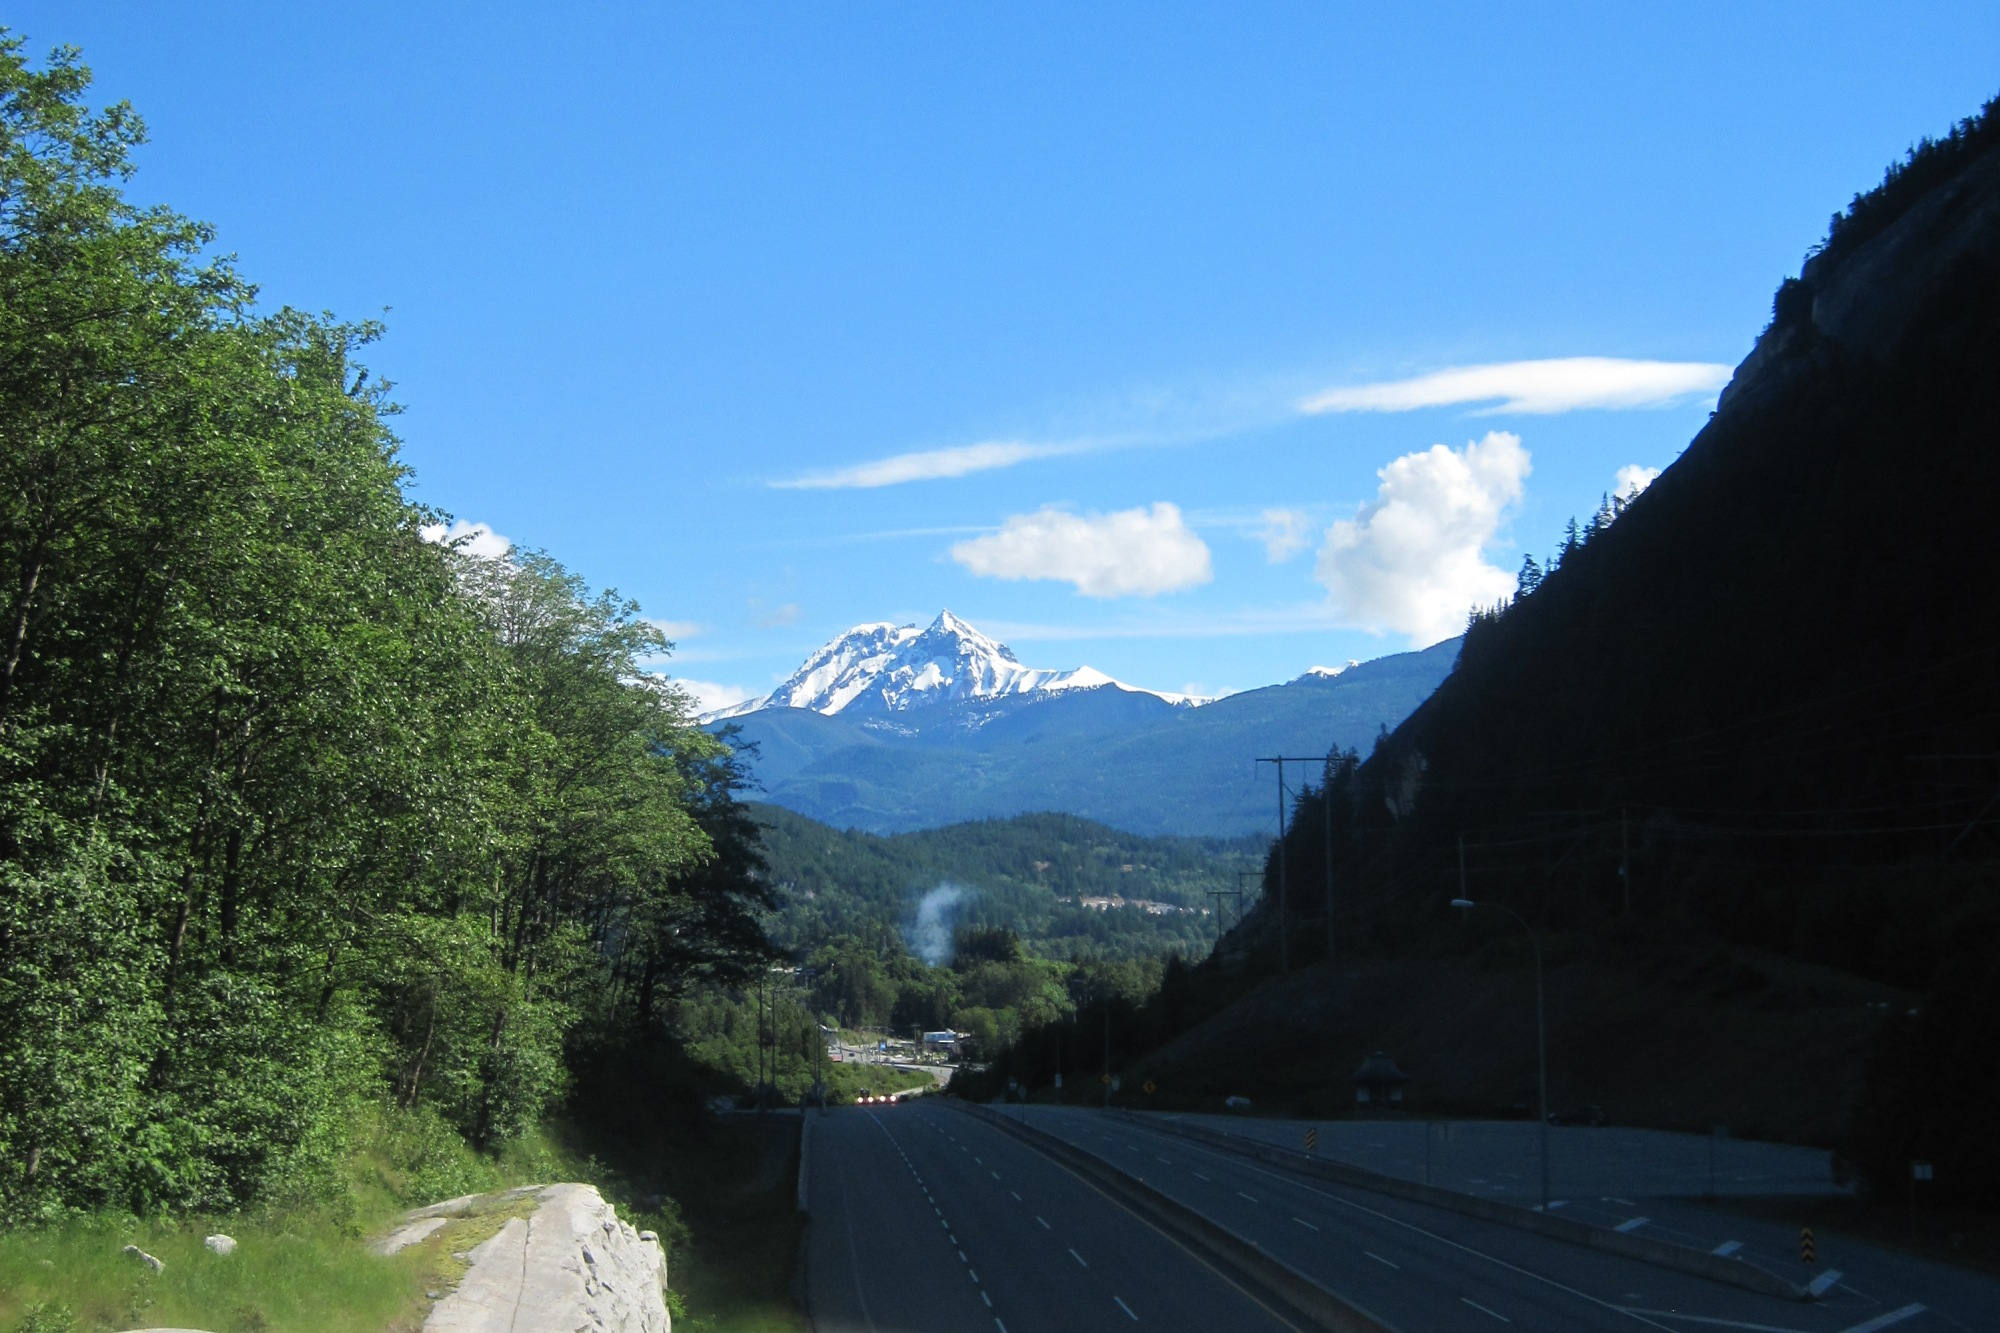 Der Sea-to-Sky Highway bei Squamish.